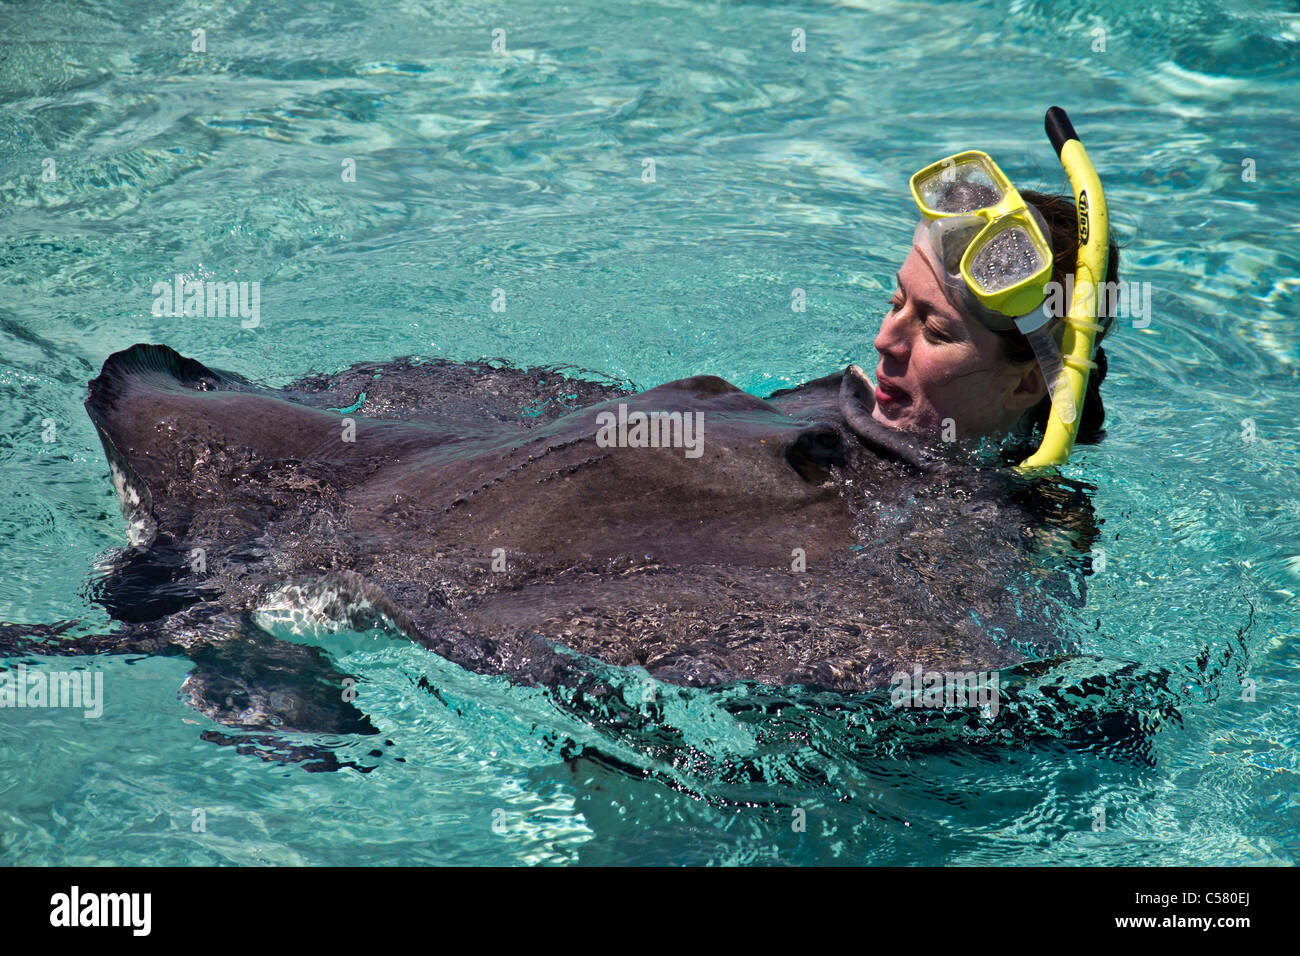 People interact with the stingrays at Stingray City, Cayman Islands - Stock Image